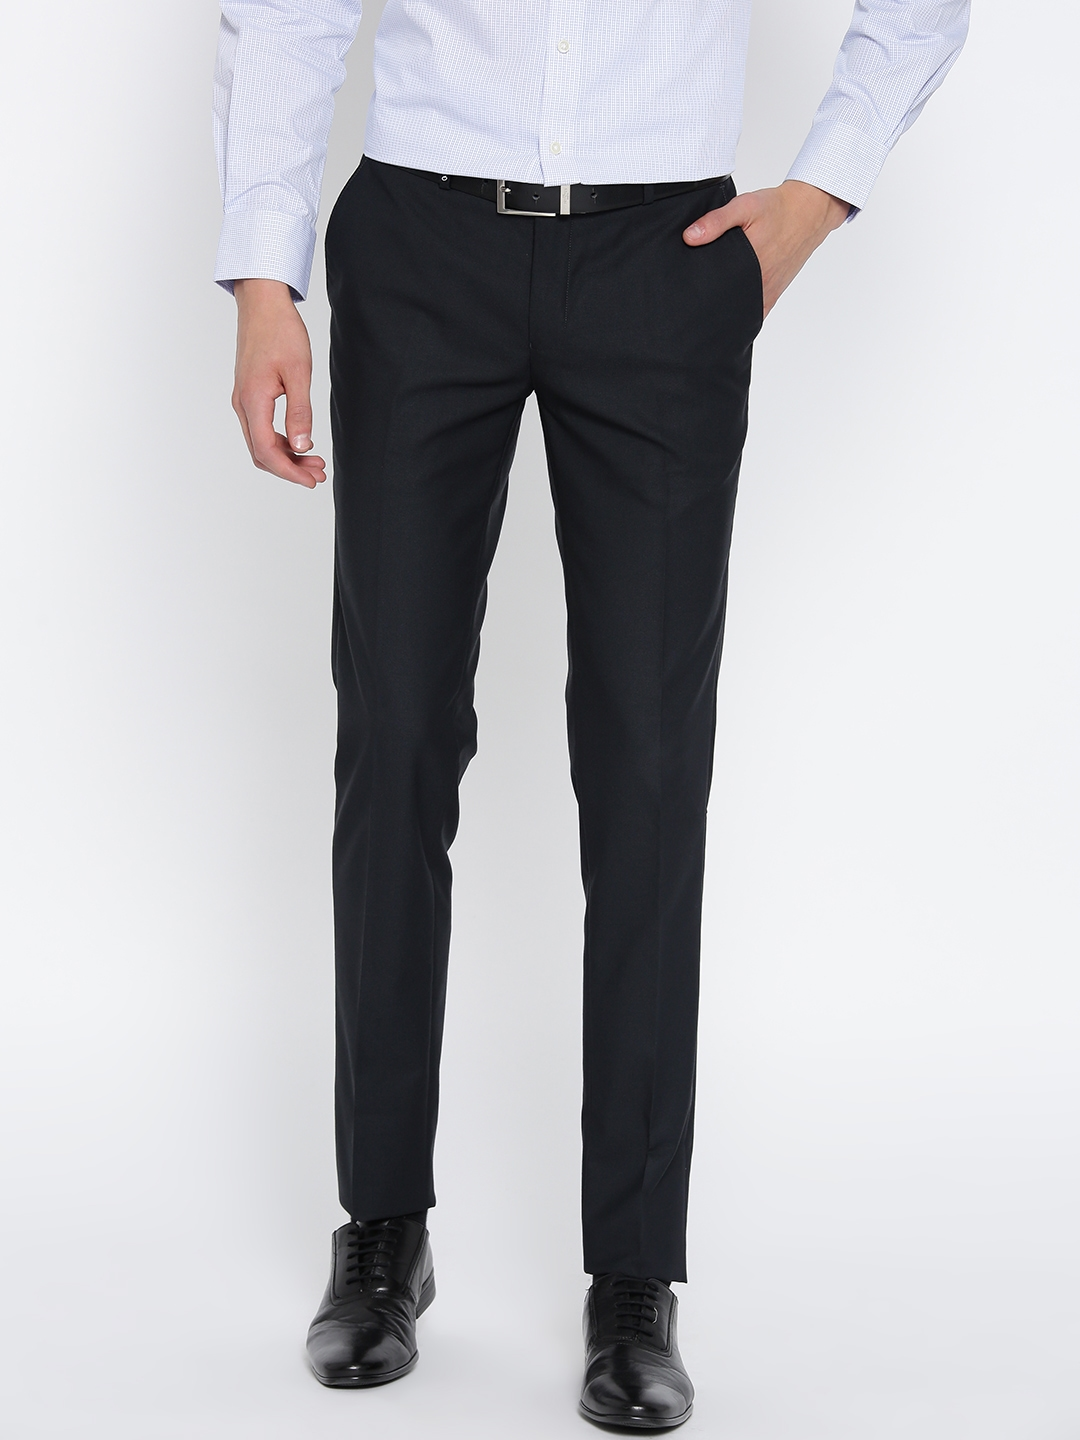 854762f1e08 Buy Oxemberg Men Navy Blue Diet Fit Solid Formal Trousers - Trousers ...